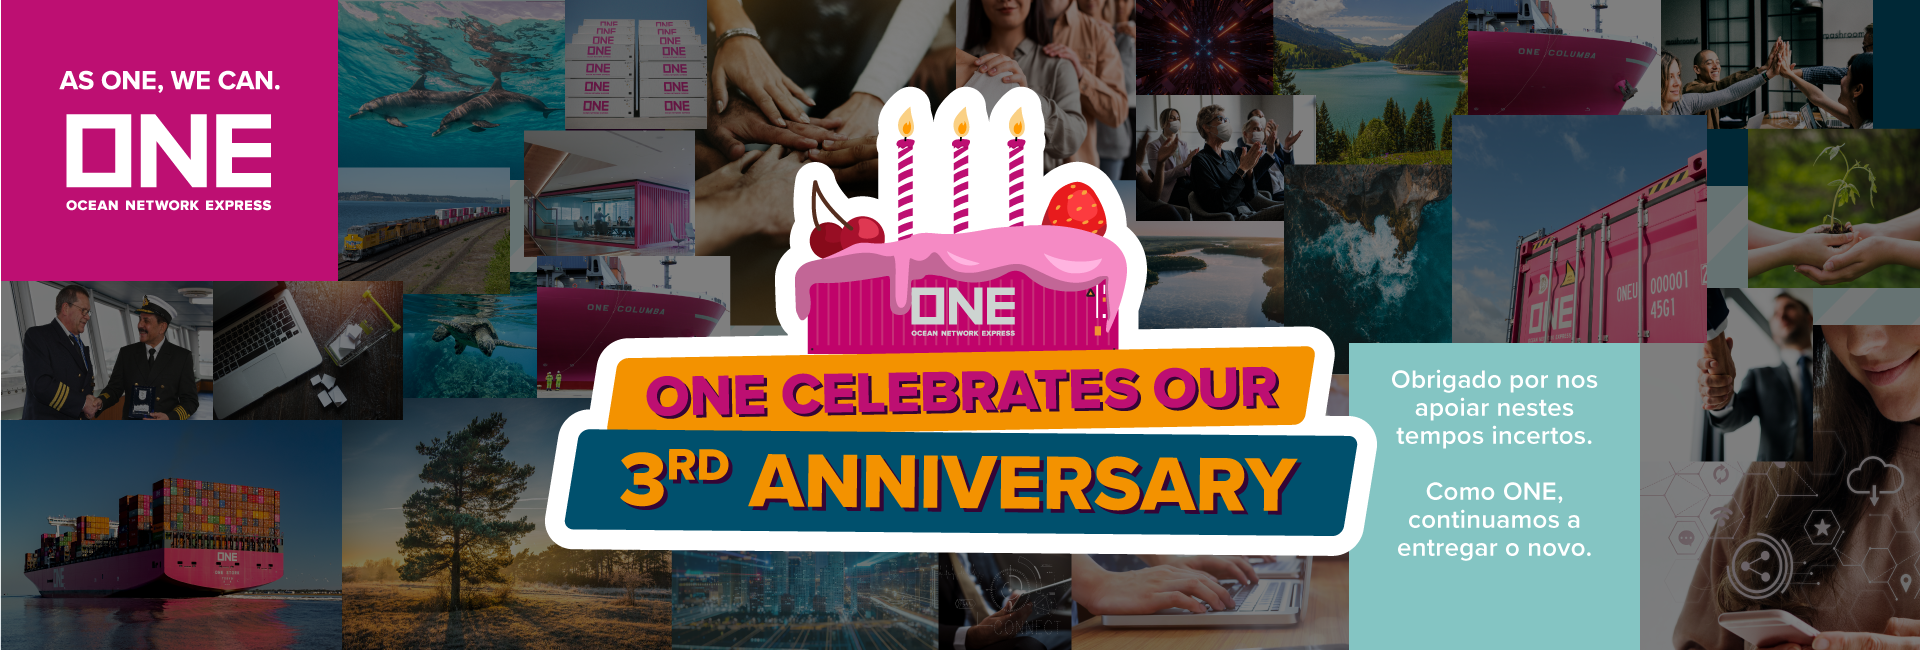 ONE-Third-anniversary_Local-site-banner-PORTUGUESE